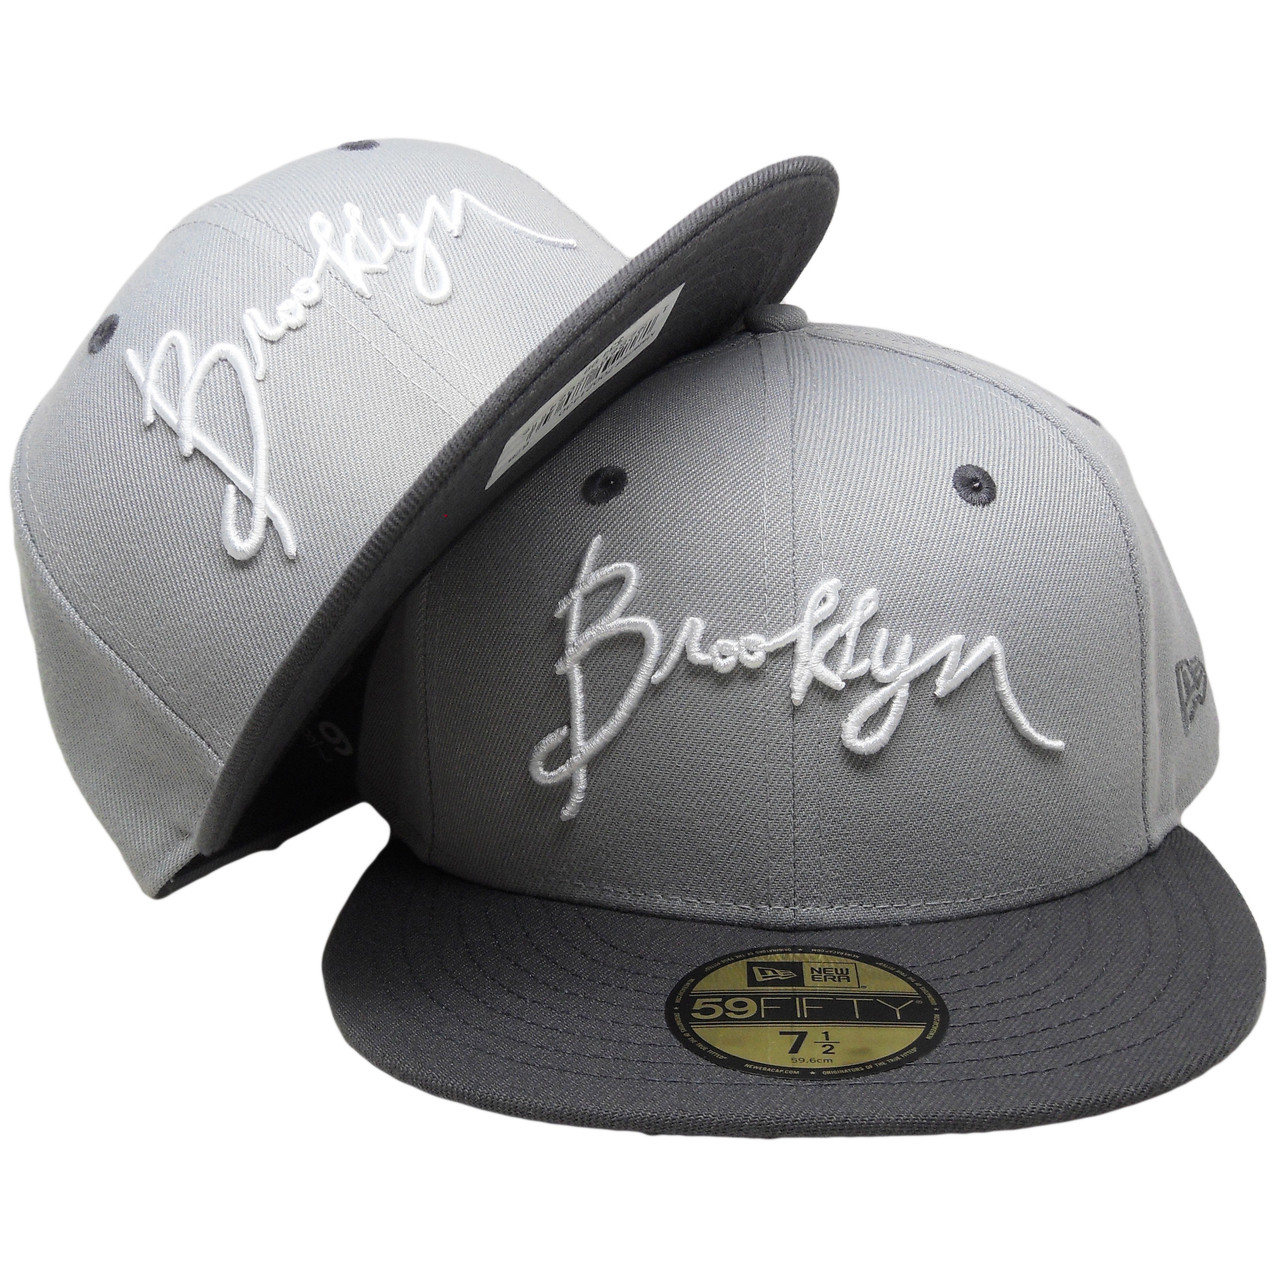 badc623c7 Script Brooklyn New Era Custom 59Fifty Fitted Hat - Gray, Graphite, White -  ECapsUnlimited.com